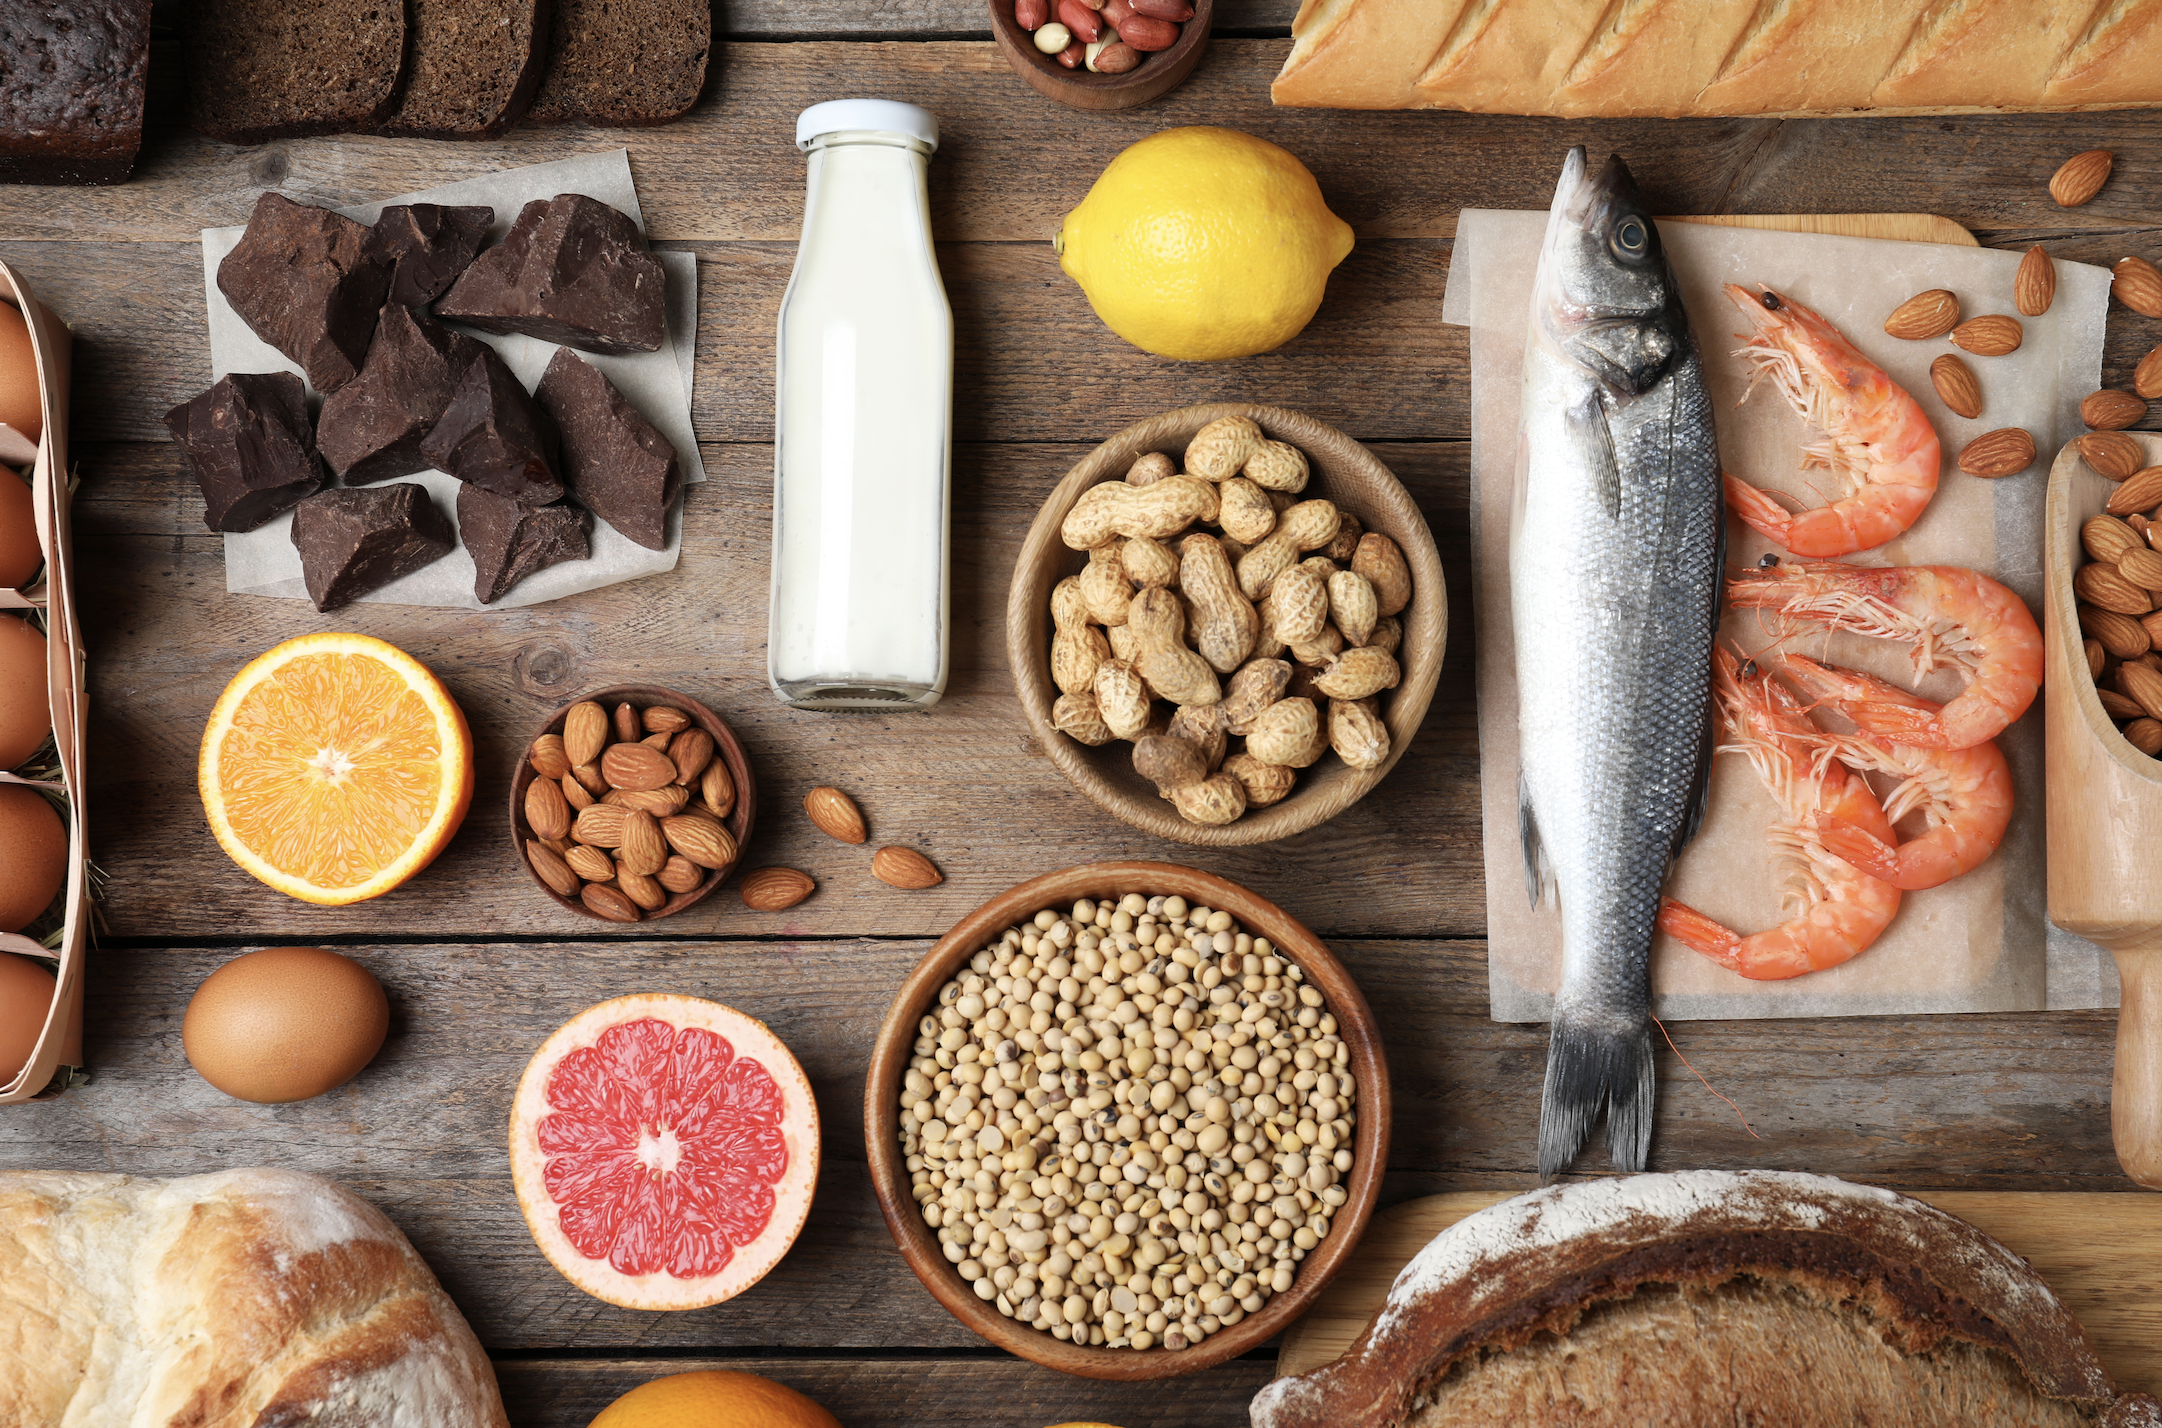 Treatment for food allergy